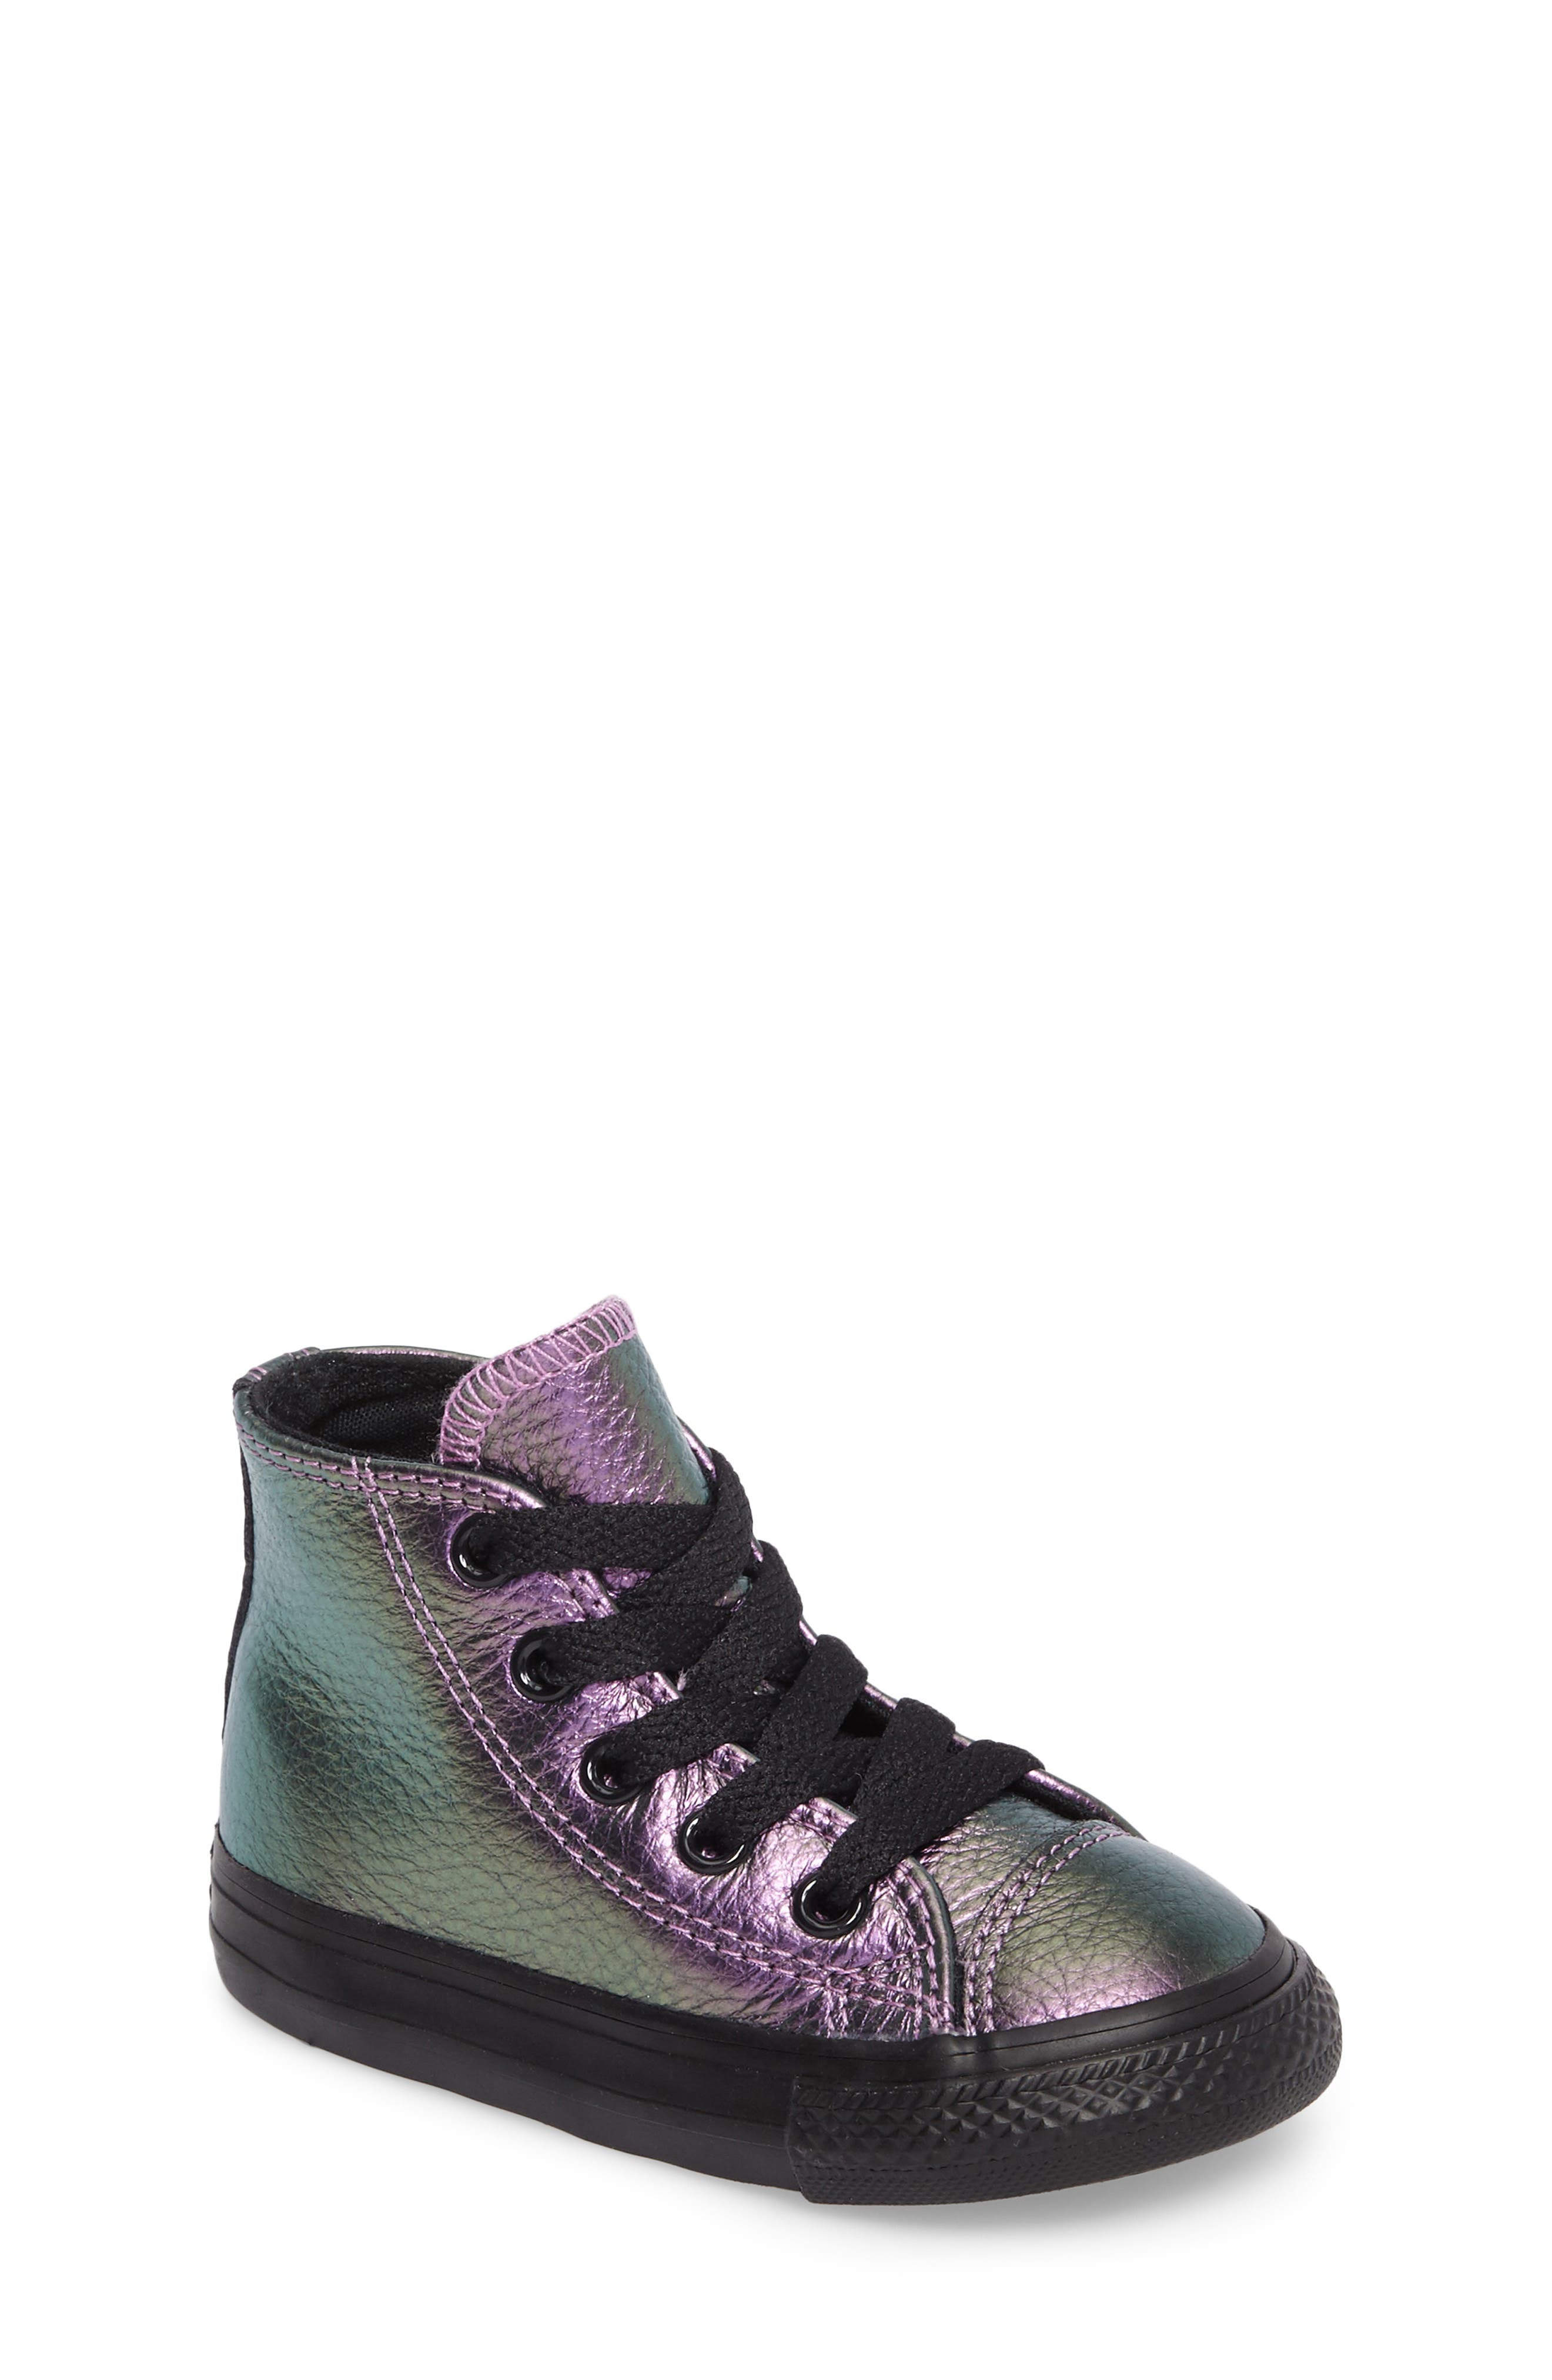 Main Image - Converse Chuck Taylor® All Star® Iridescent Leather High Top Sneaker (Baby, Walker, Toddler & Little Kid)